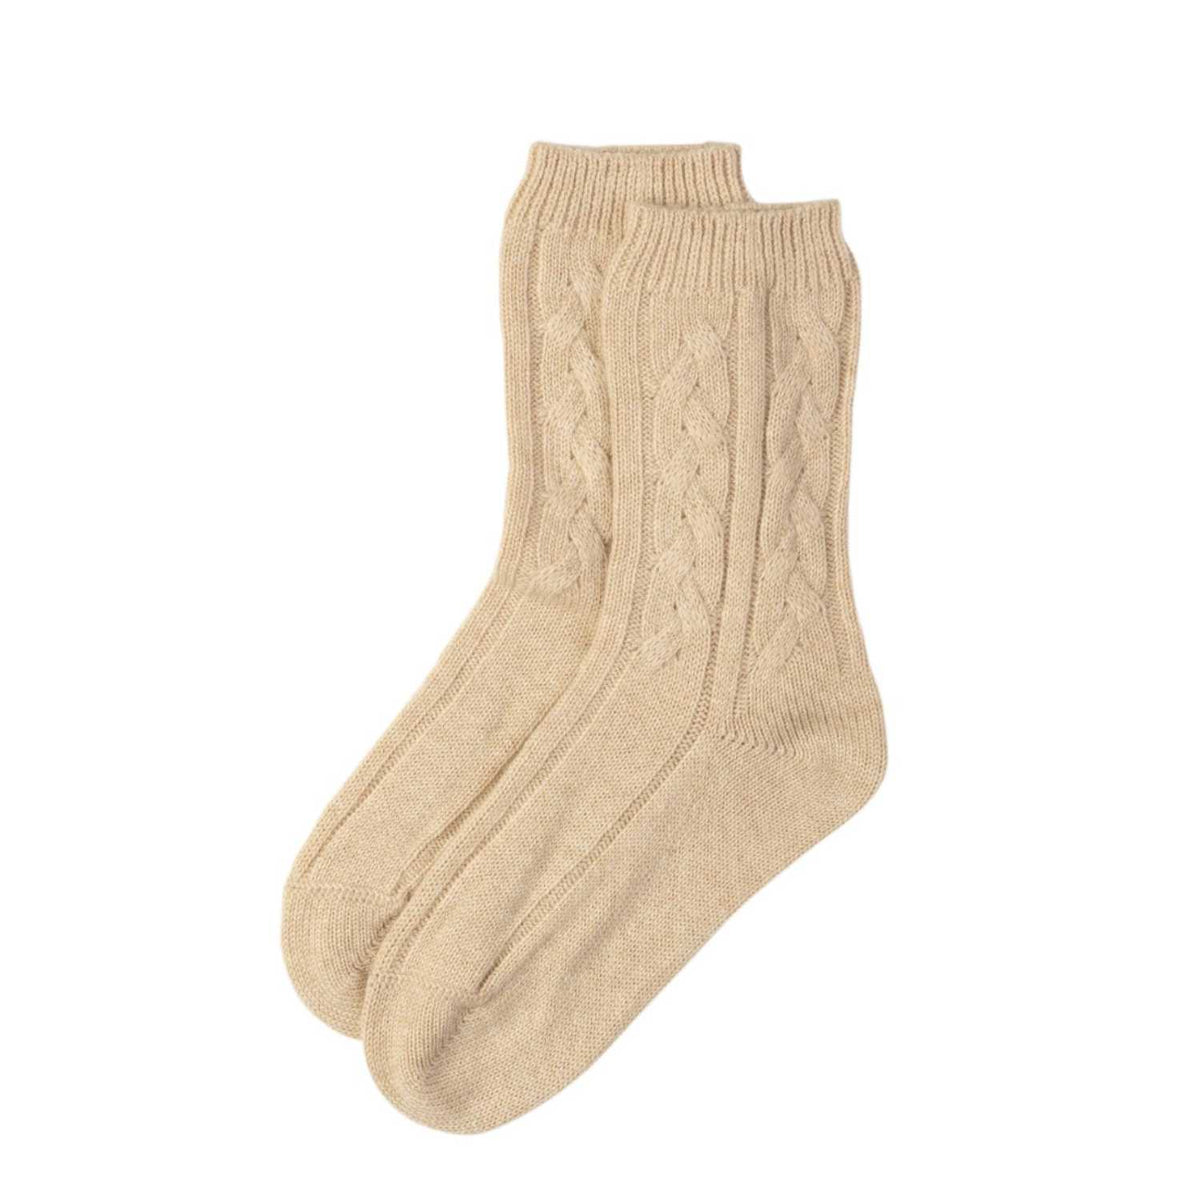 Natural Beige | Pure Cashmere Unisex Bed Sock | Shop at The Cashmere Choice | London